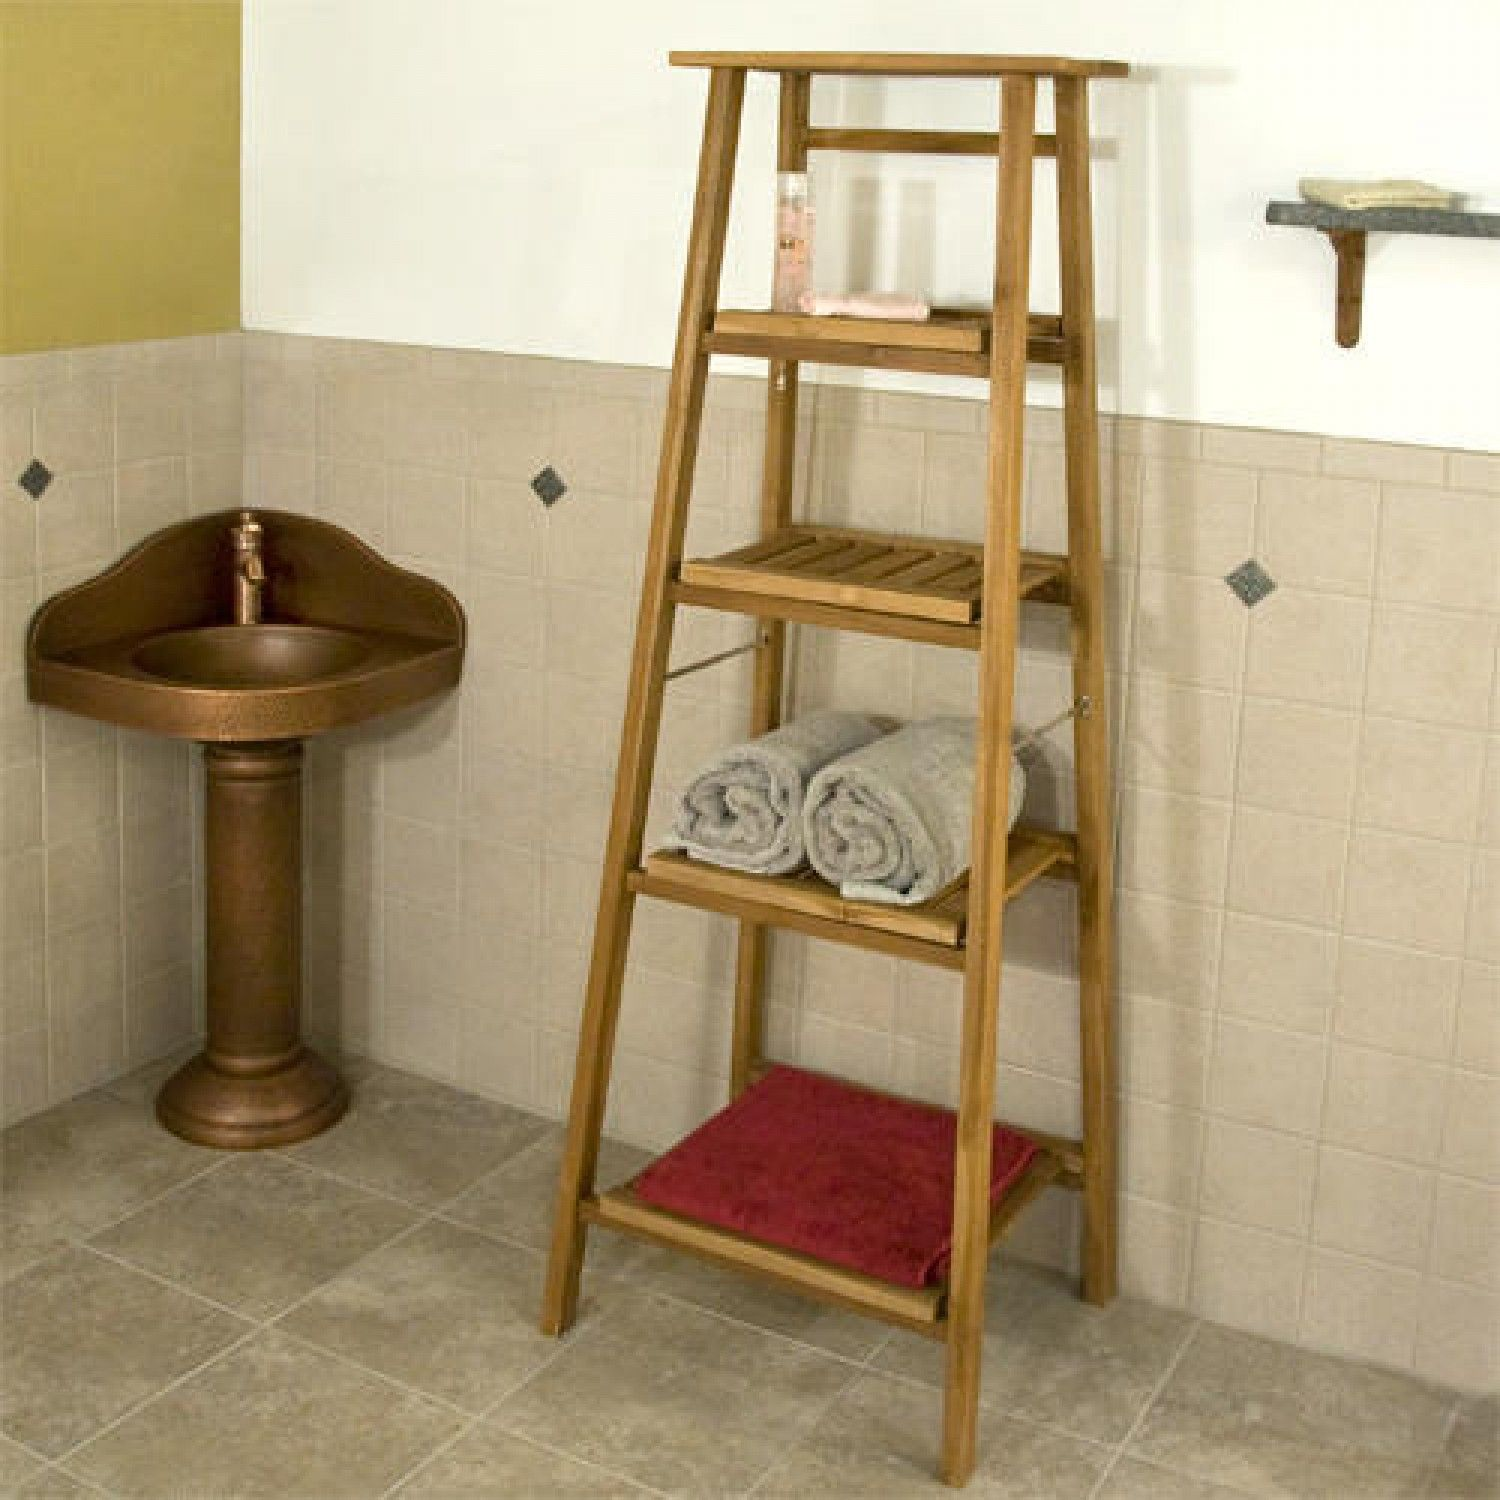 Four Tiered Ladder Style Teak Bathroom Shelf | Bathroom | Pinterest ...